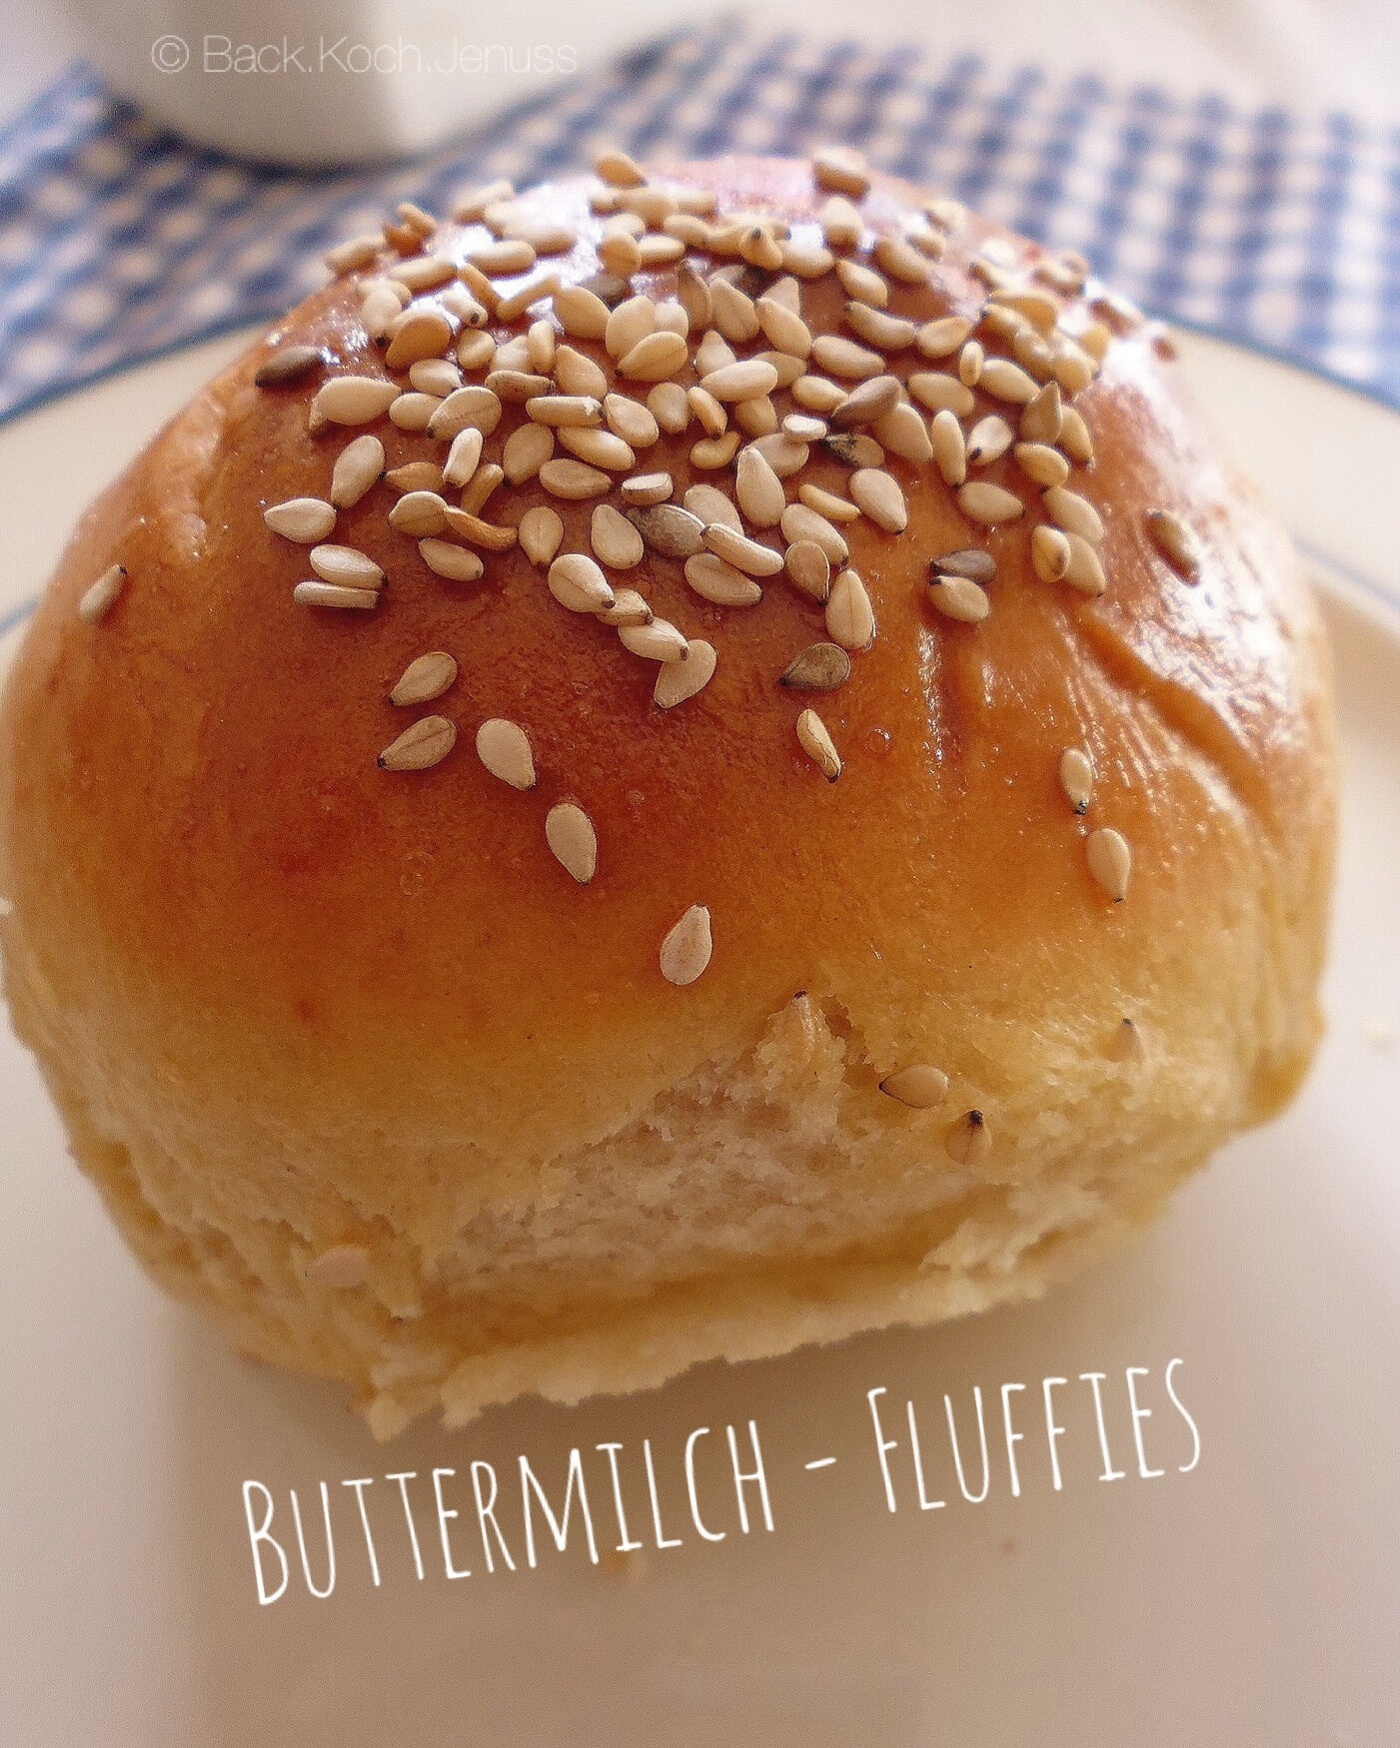 Buttermilch-Fluffies